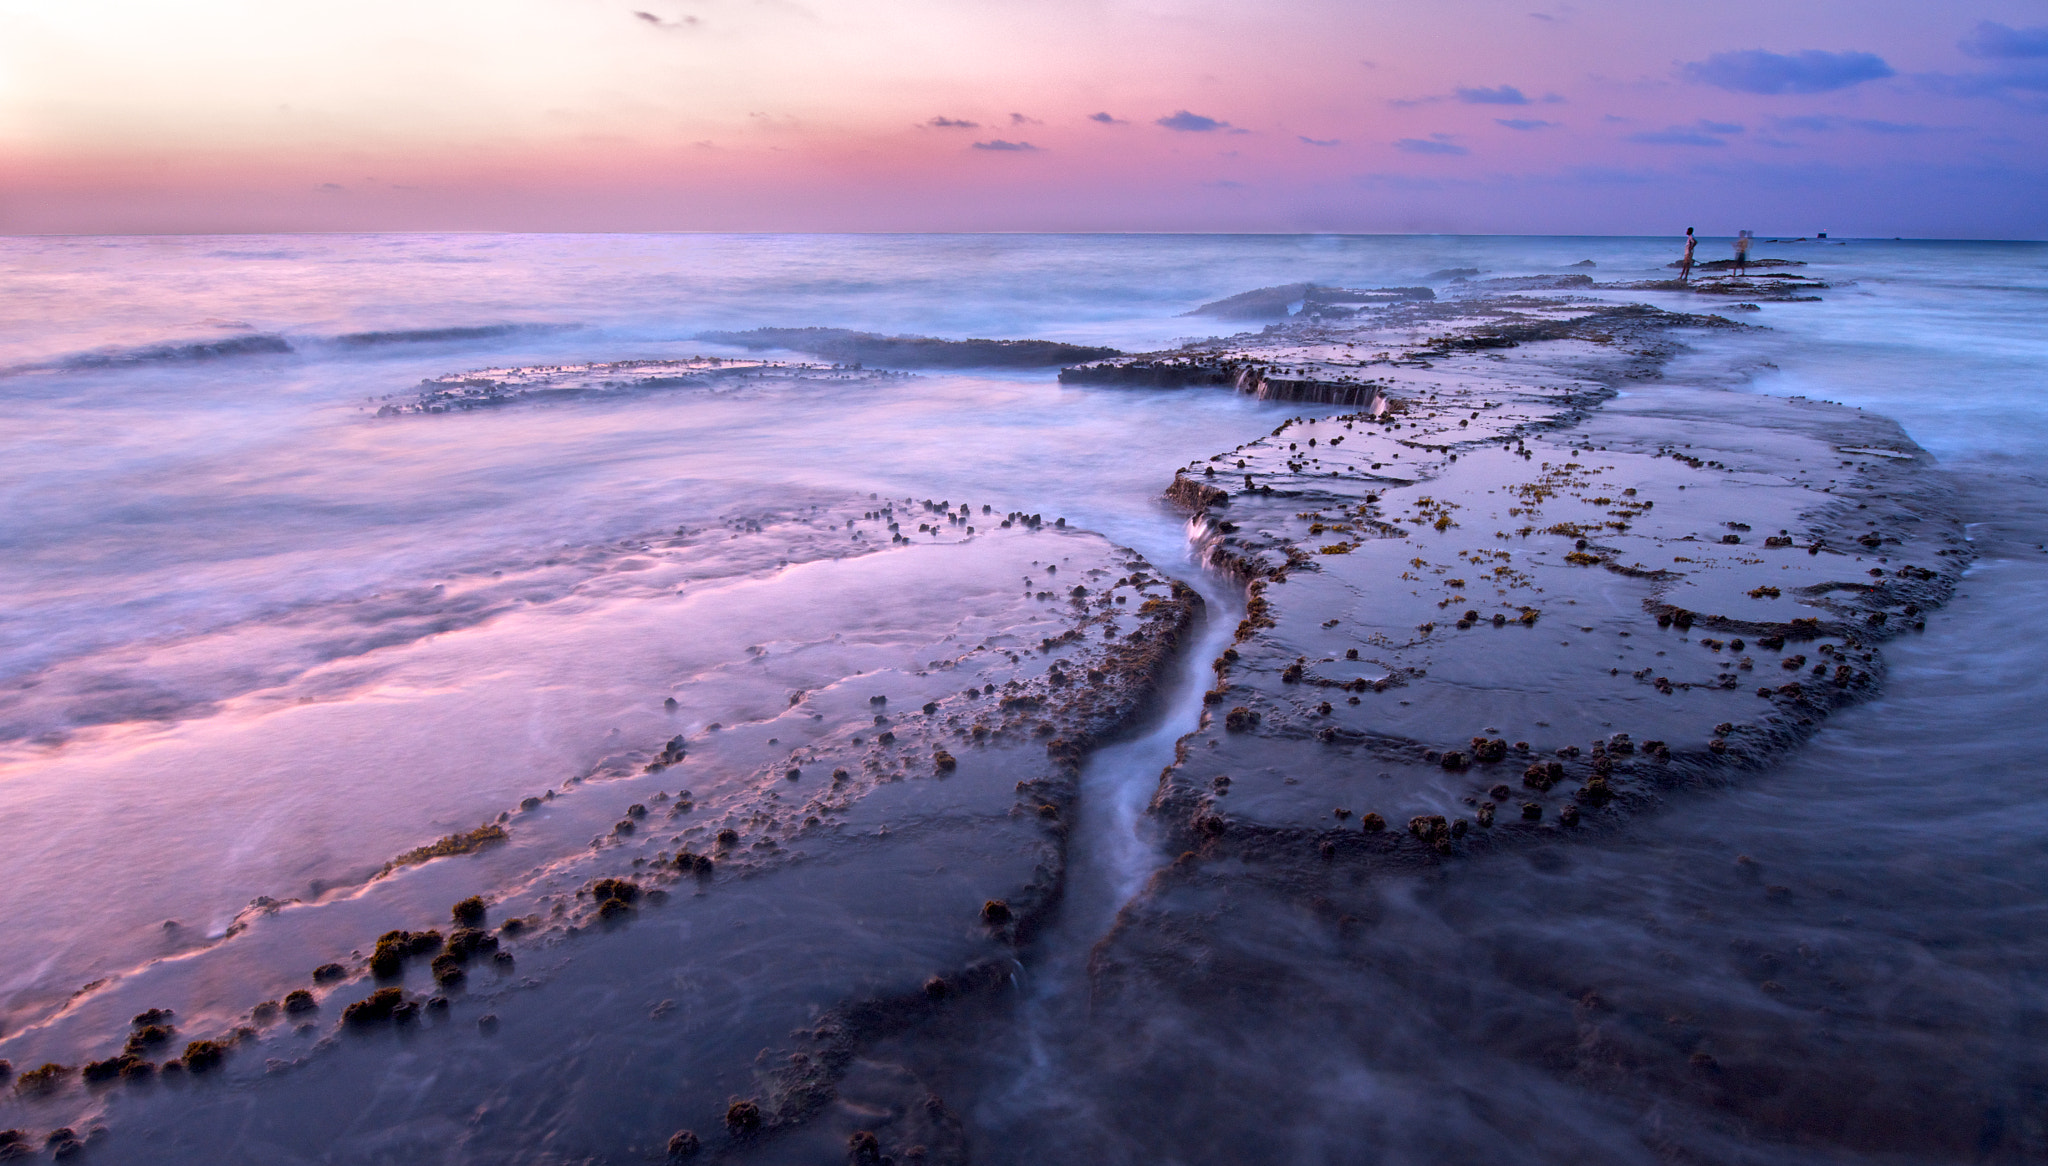 Photograph RinsinG ReeF by ViShWa  on 500px